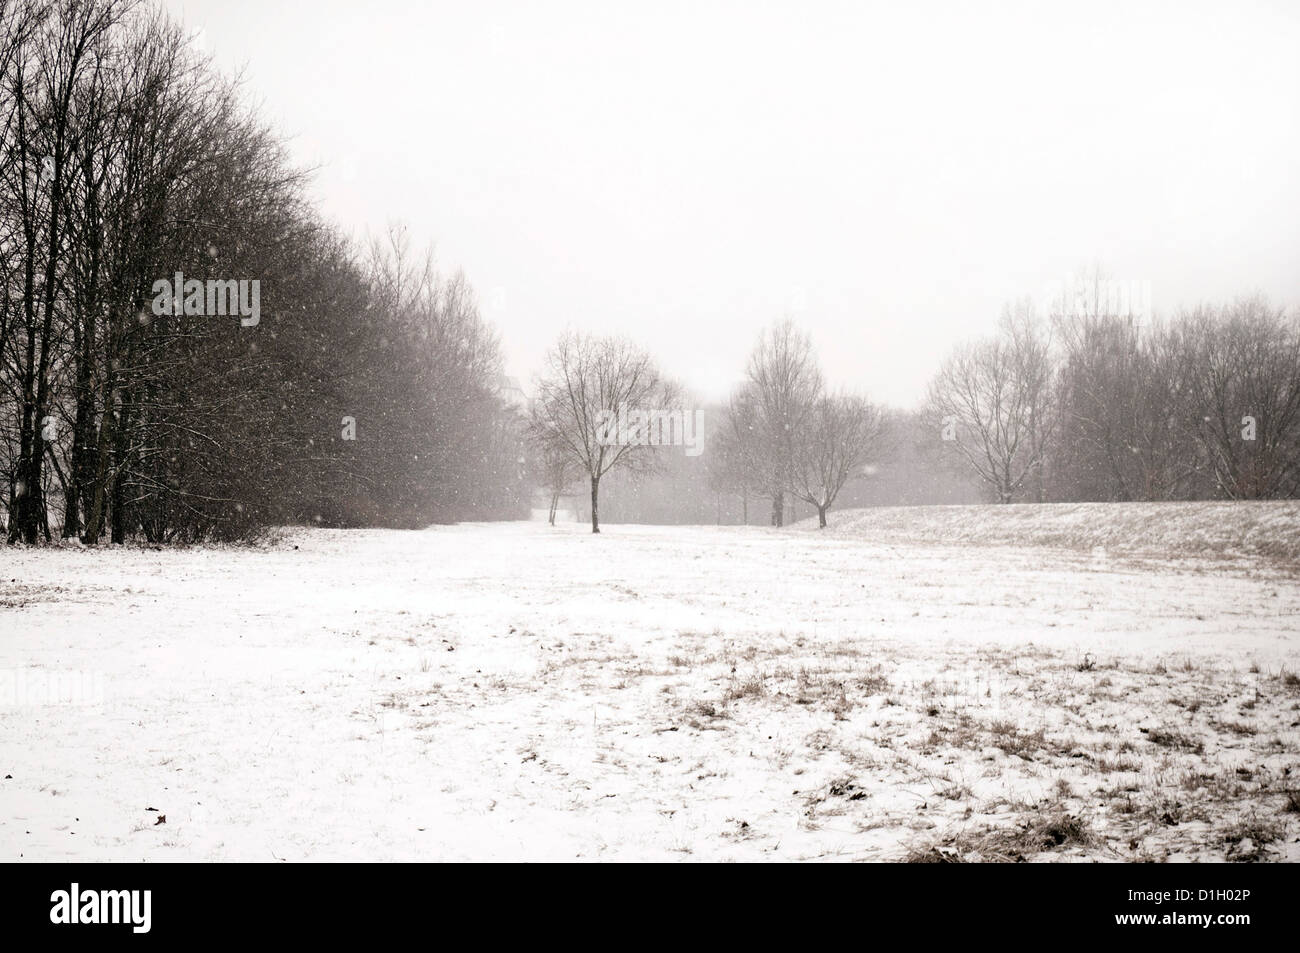 winter landscape during snowing - Stock Image